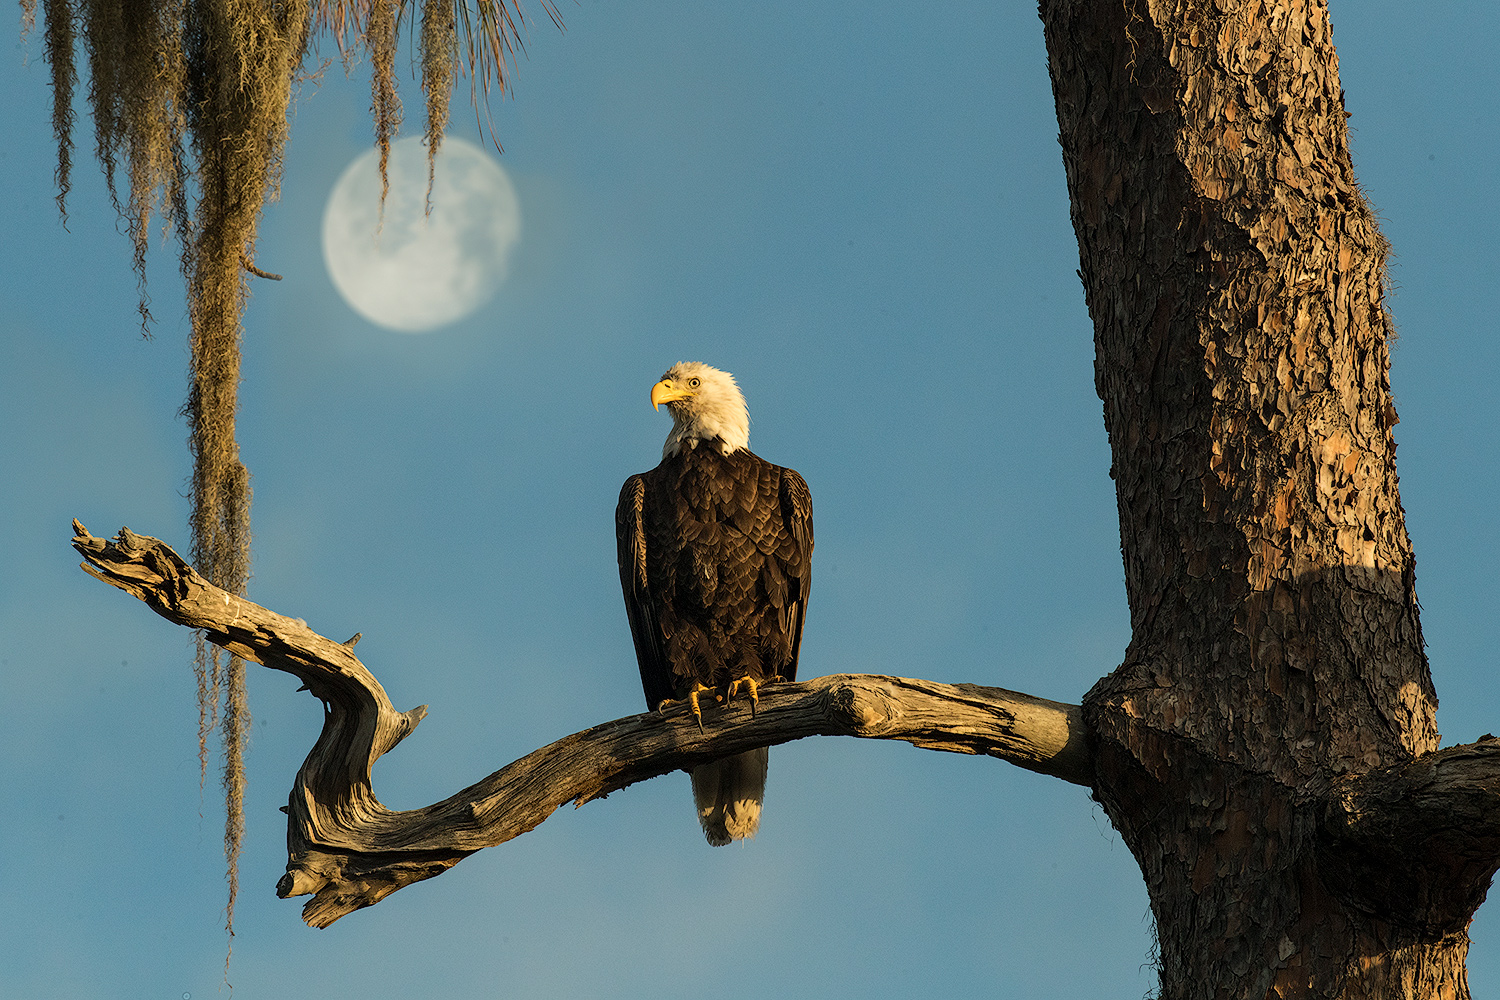 Florida has one of the densest concentrations of nesting bald eagles in the lower 48 states, with an estimated 1,500 nesting pairs according to Florida Fish and Wildlife Conservation Commission. This one nests at the Greenwood Cemetery near downtown Orlando.